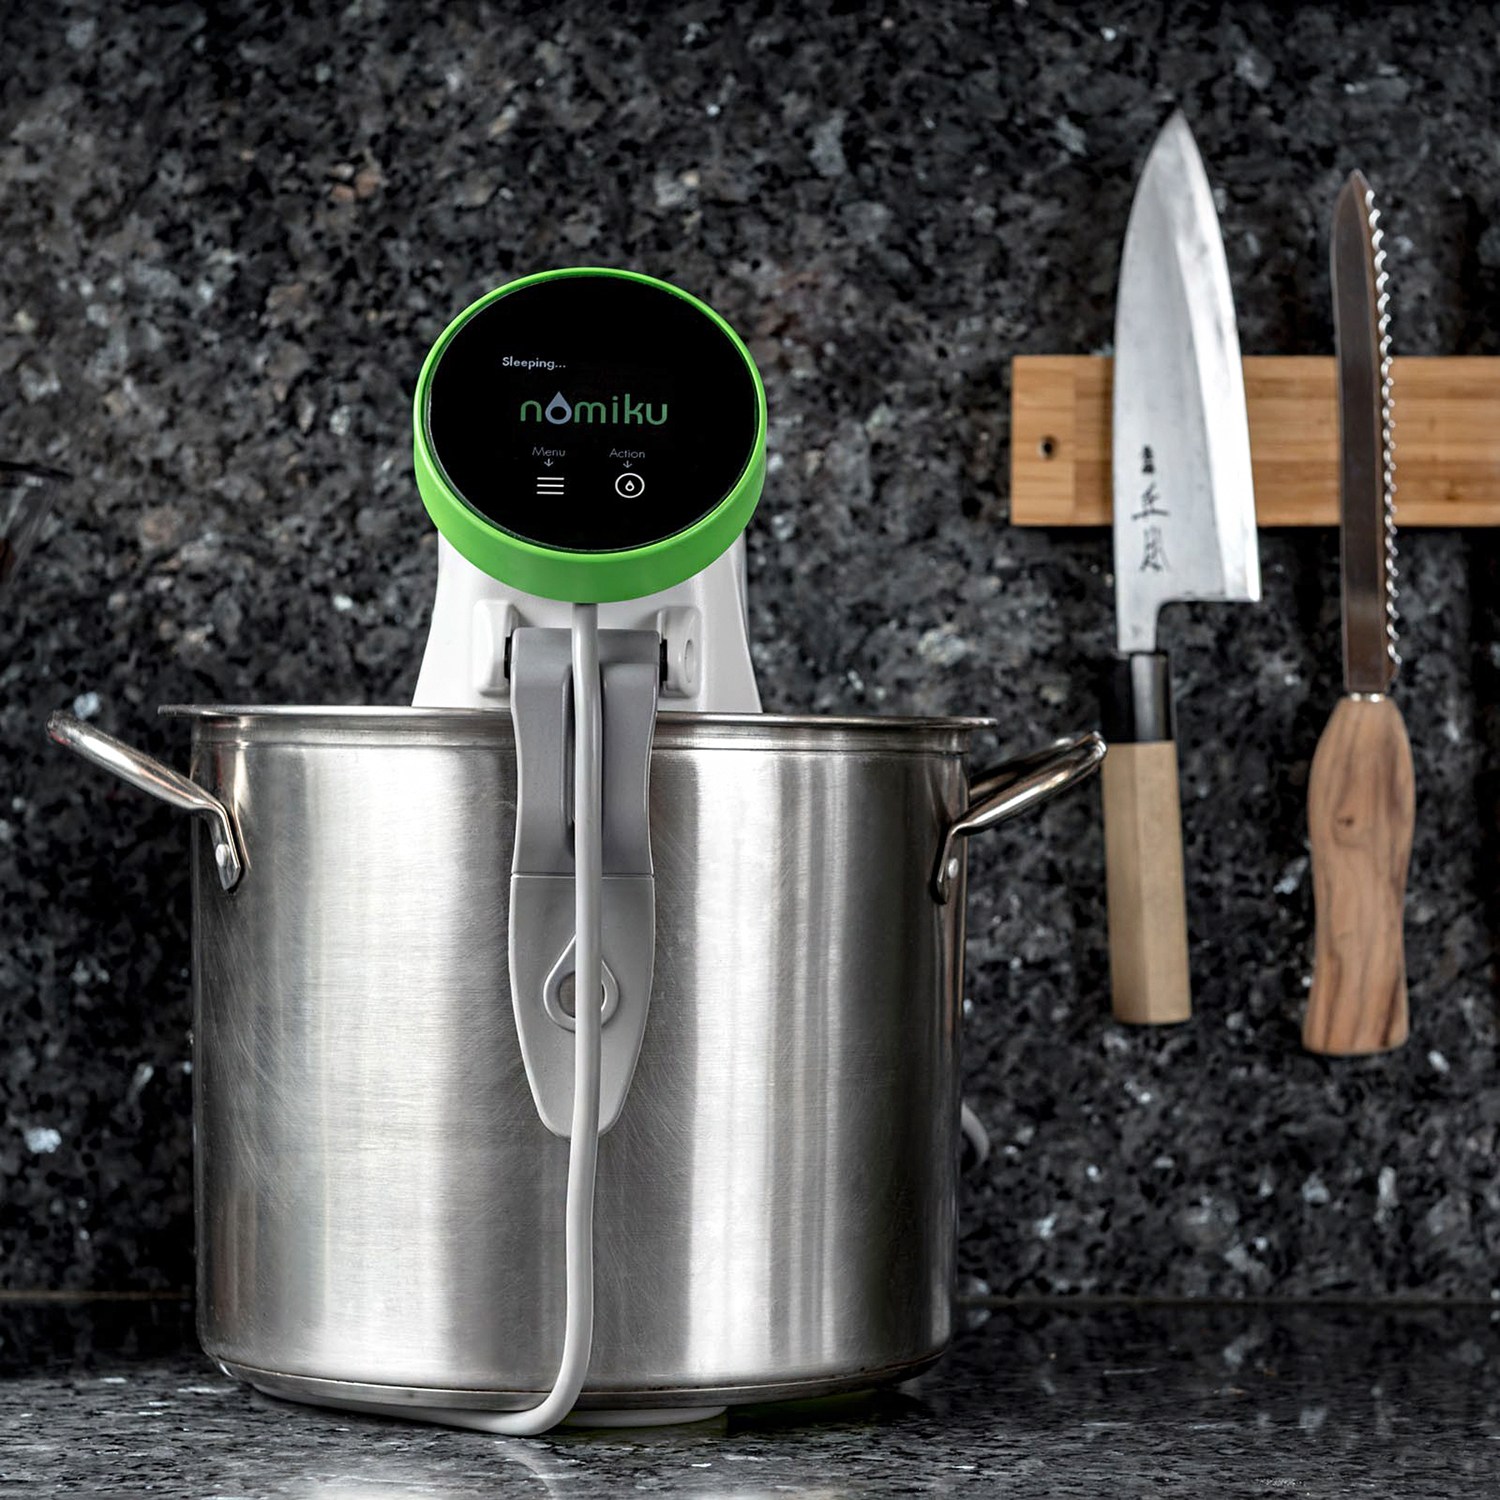 Nomiku Wifi Sous Vide Immersion Circulator